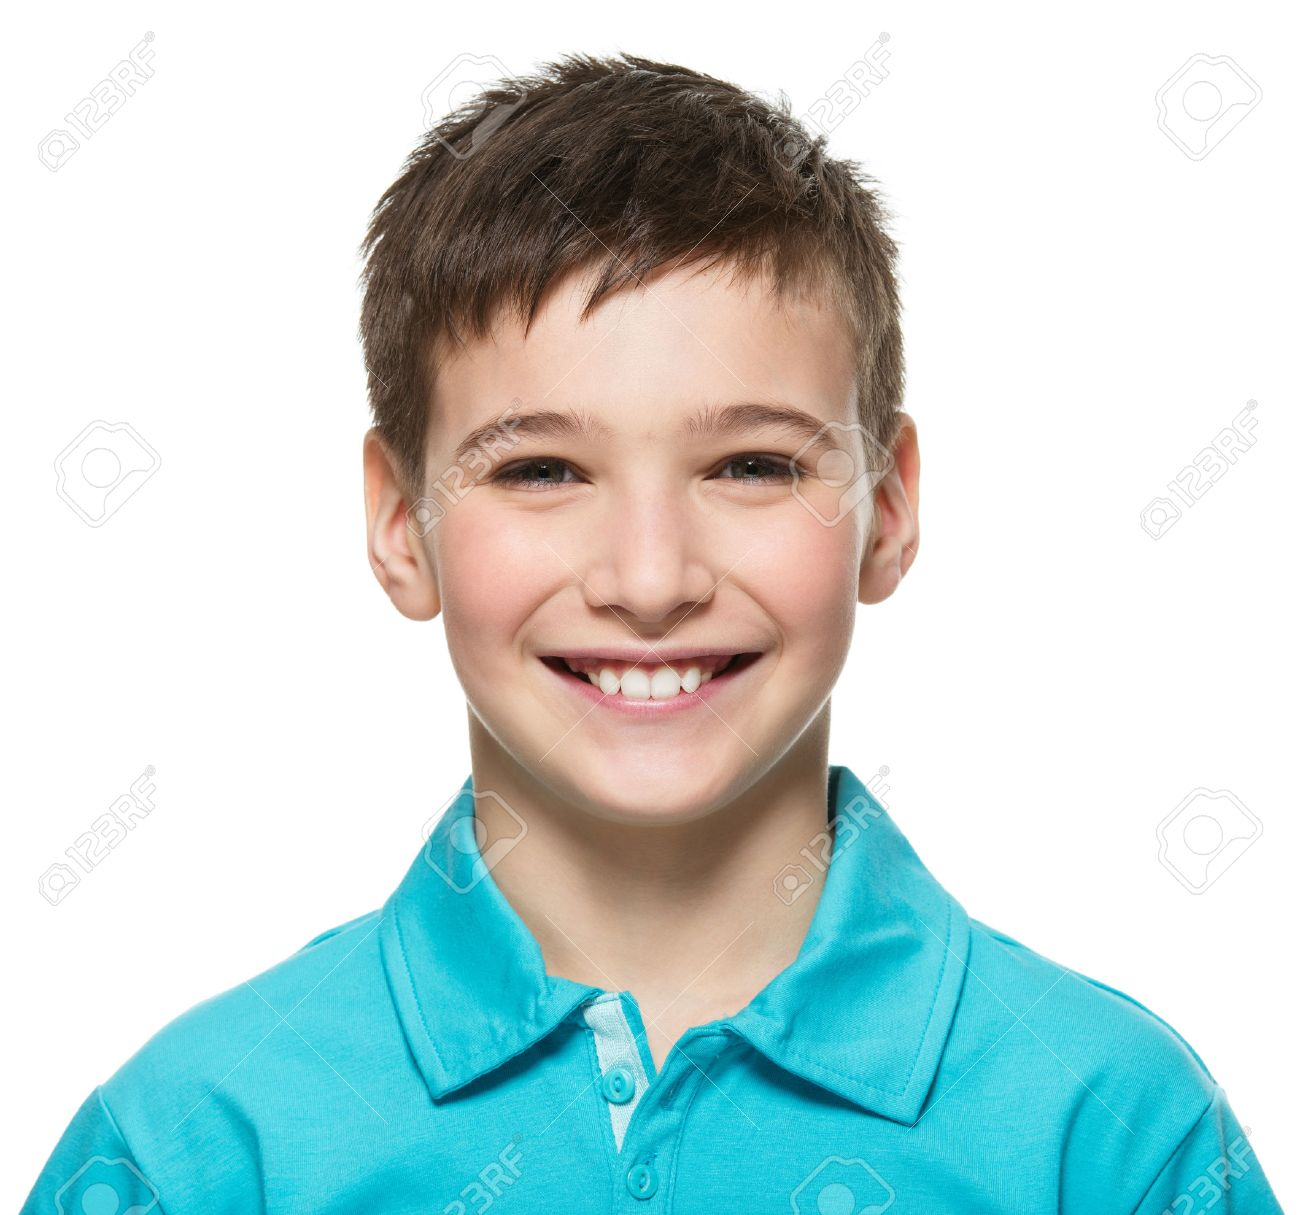 Portrait of young happy teen boy looking at camera. - 53555185